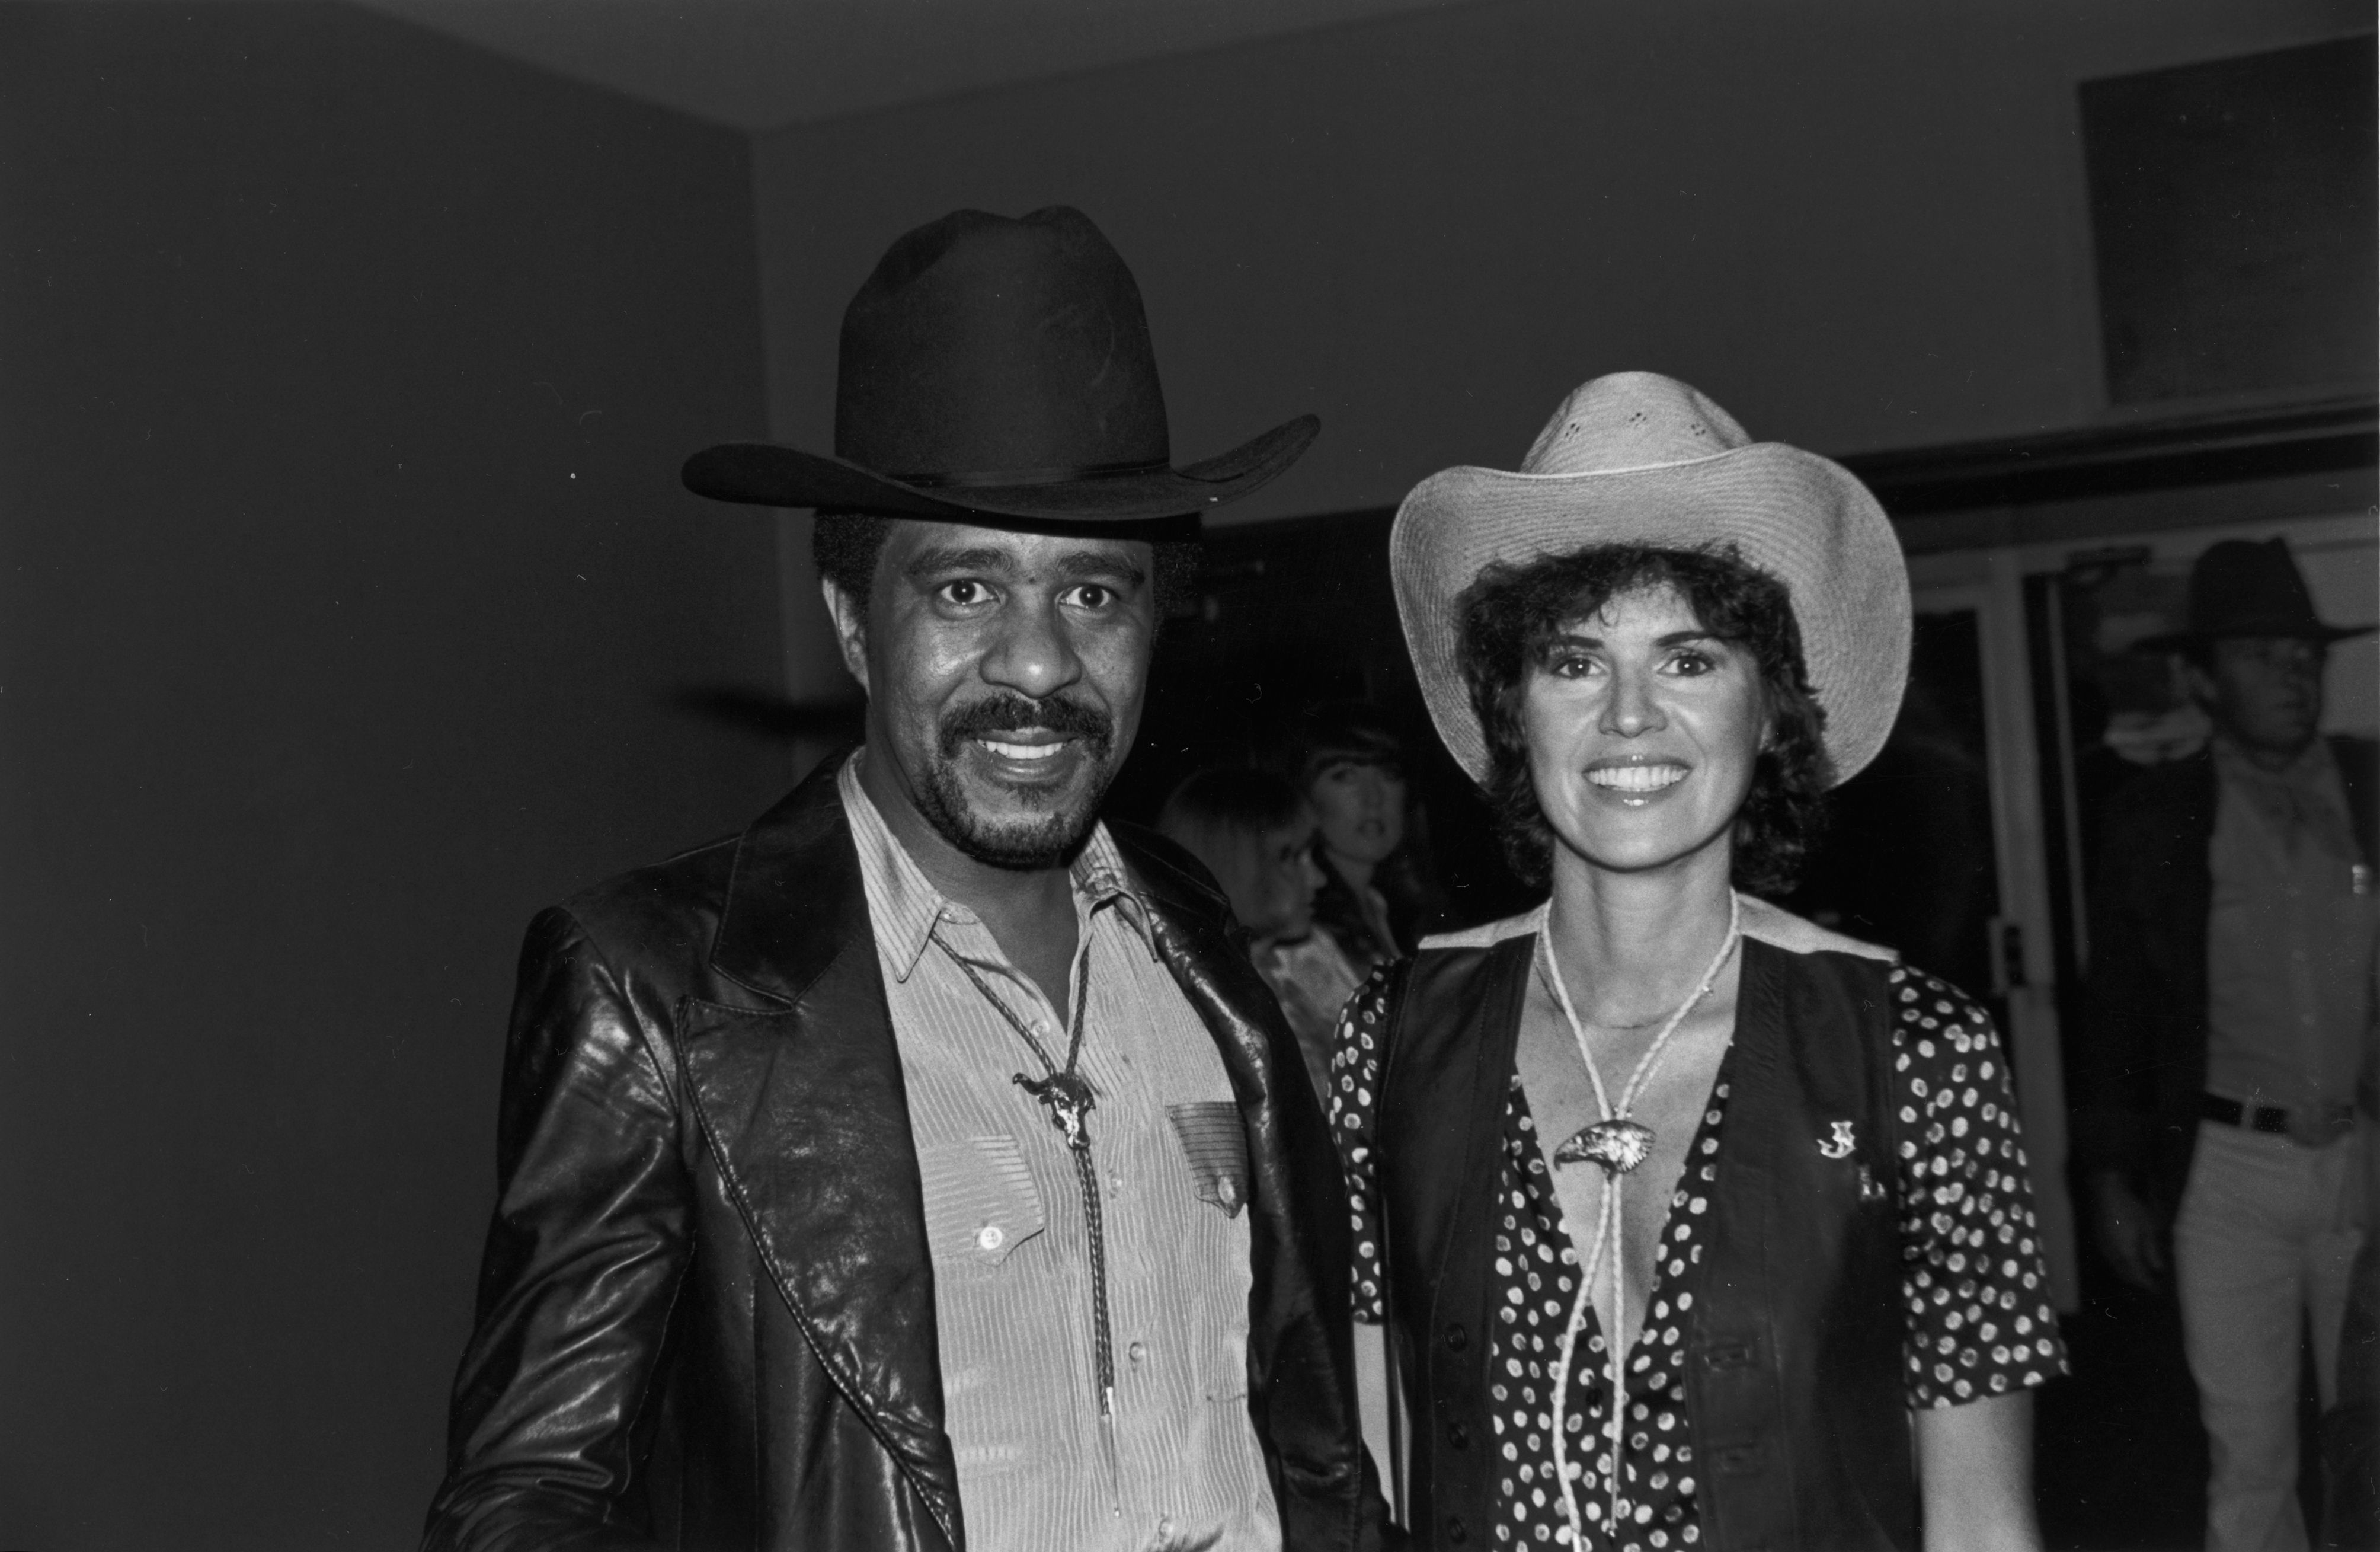 Richard Pryor and Jennifer Lee wearing cowboy hats and bolo ties, smile while at the annual SHARE party, held at the Hollywood Palladium, Hollywood, California.   Source: Getty Images